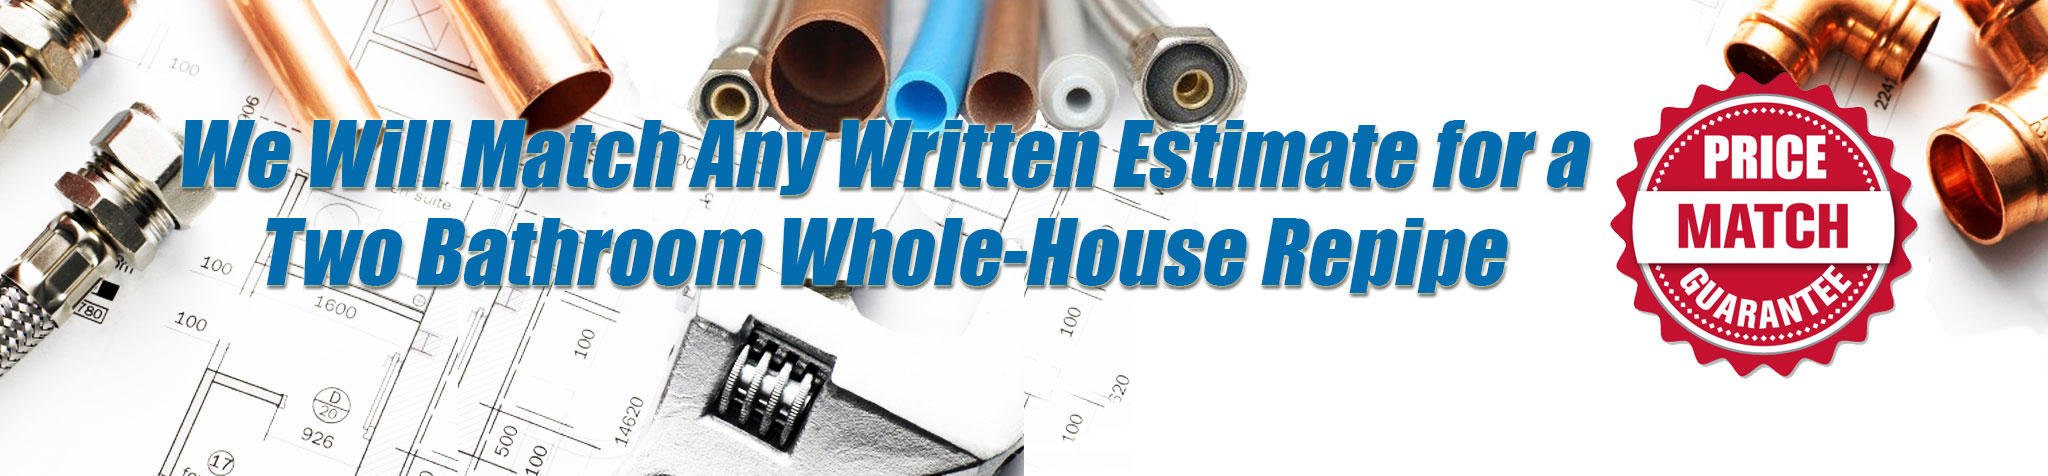 We will match any written estimate for a whole-house two bathroom Repipe